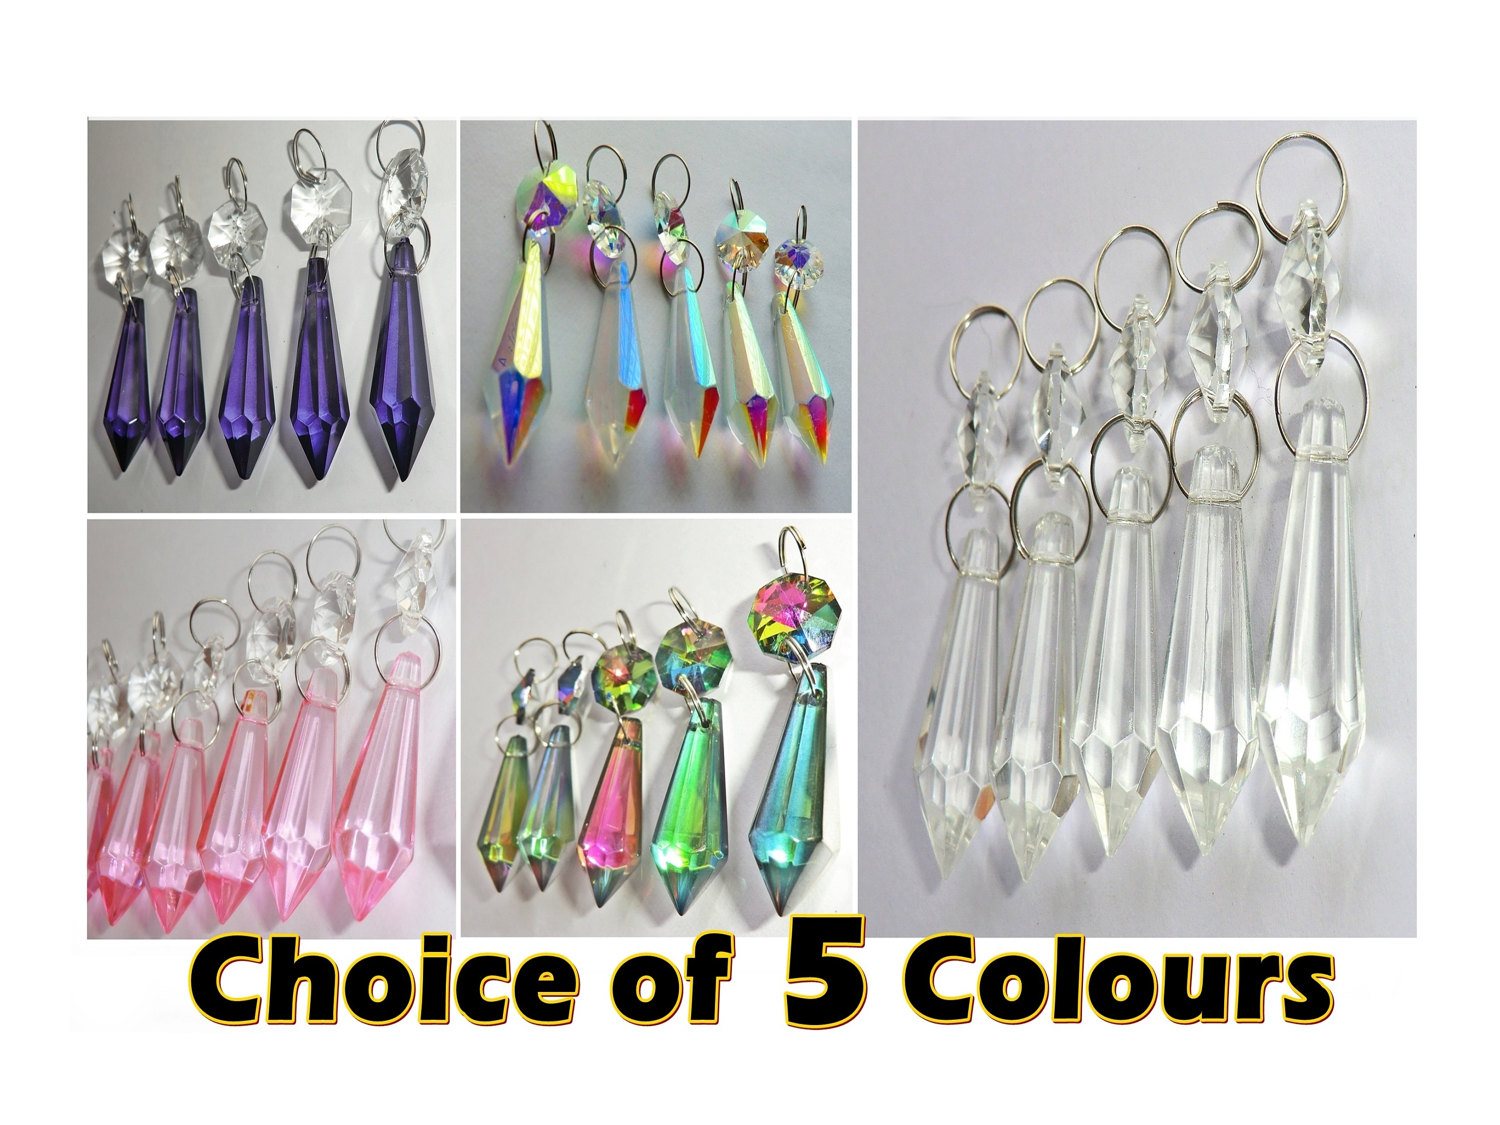 Choice of 5 Colours - 5 Chandelier Drops Glass Crystals Droplets ...